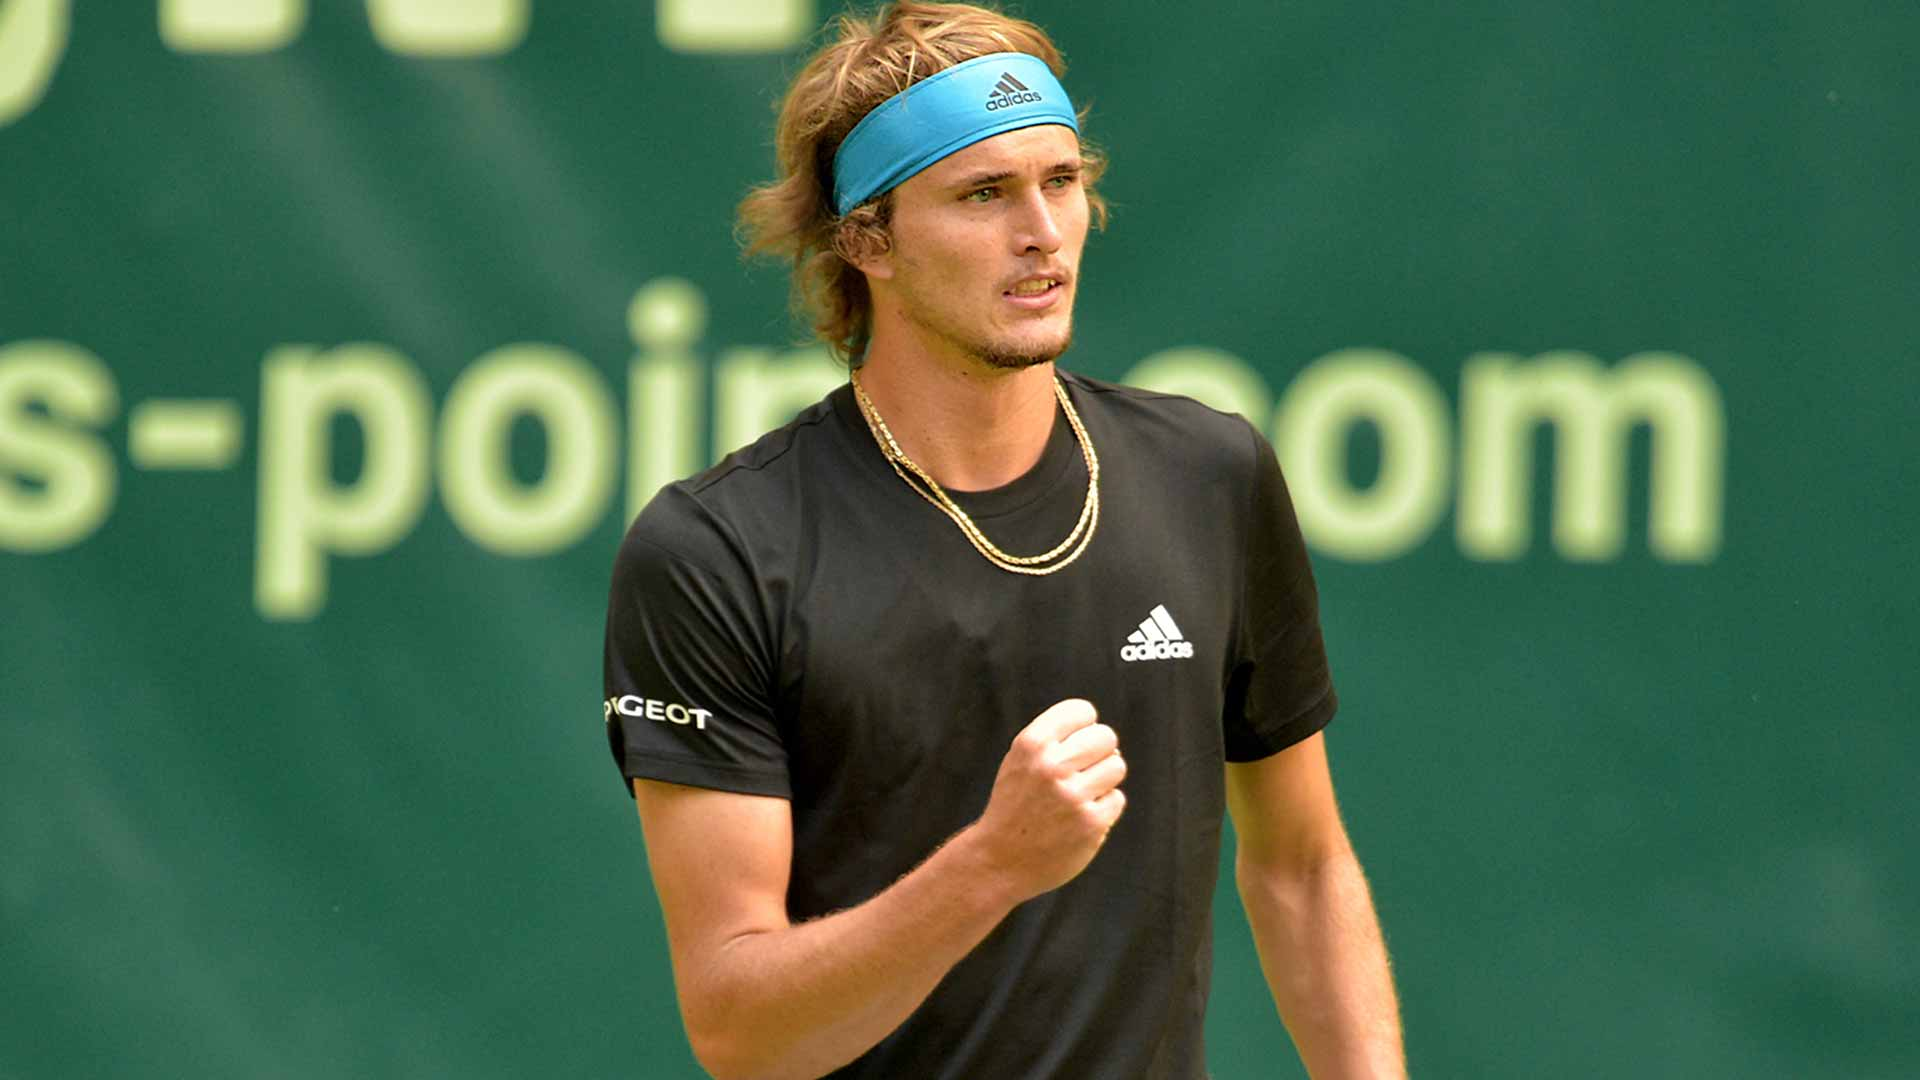 Alexander Zverev beats Steve Johnson to make the Halle quarter-finals